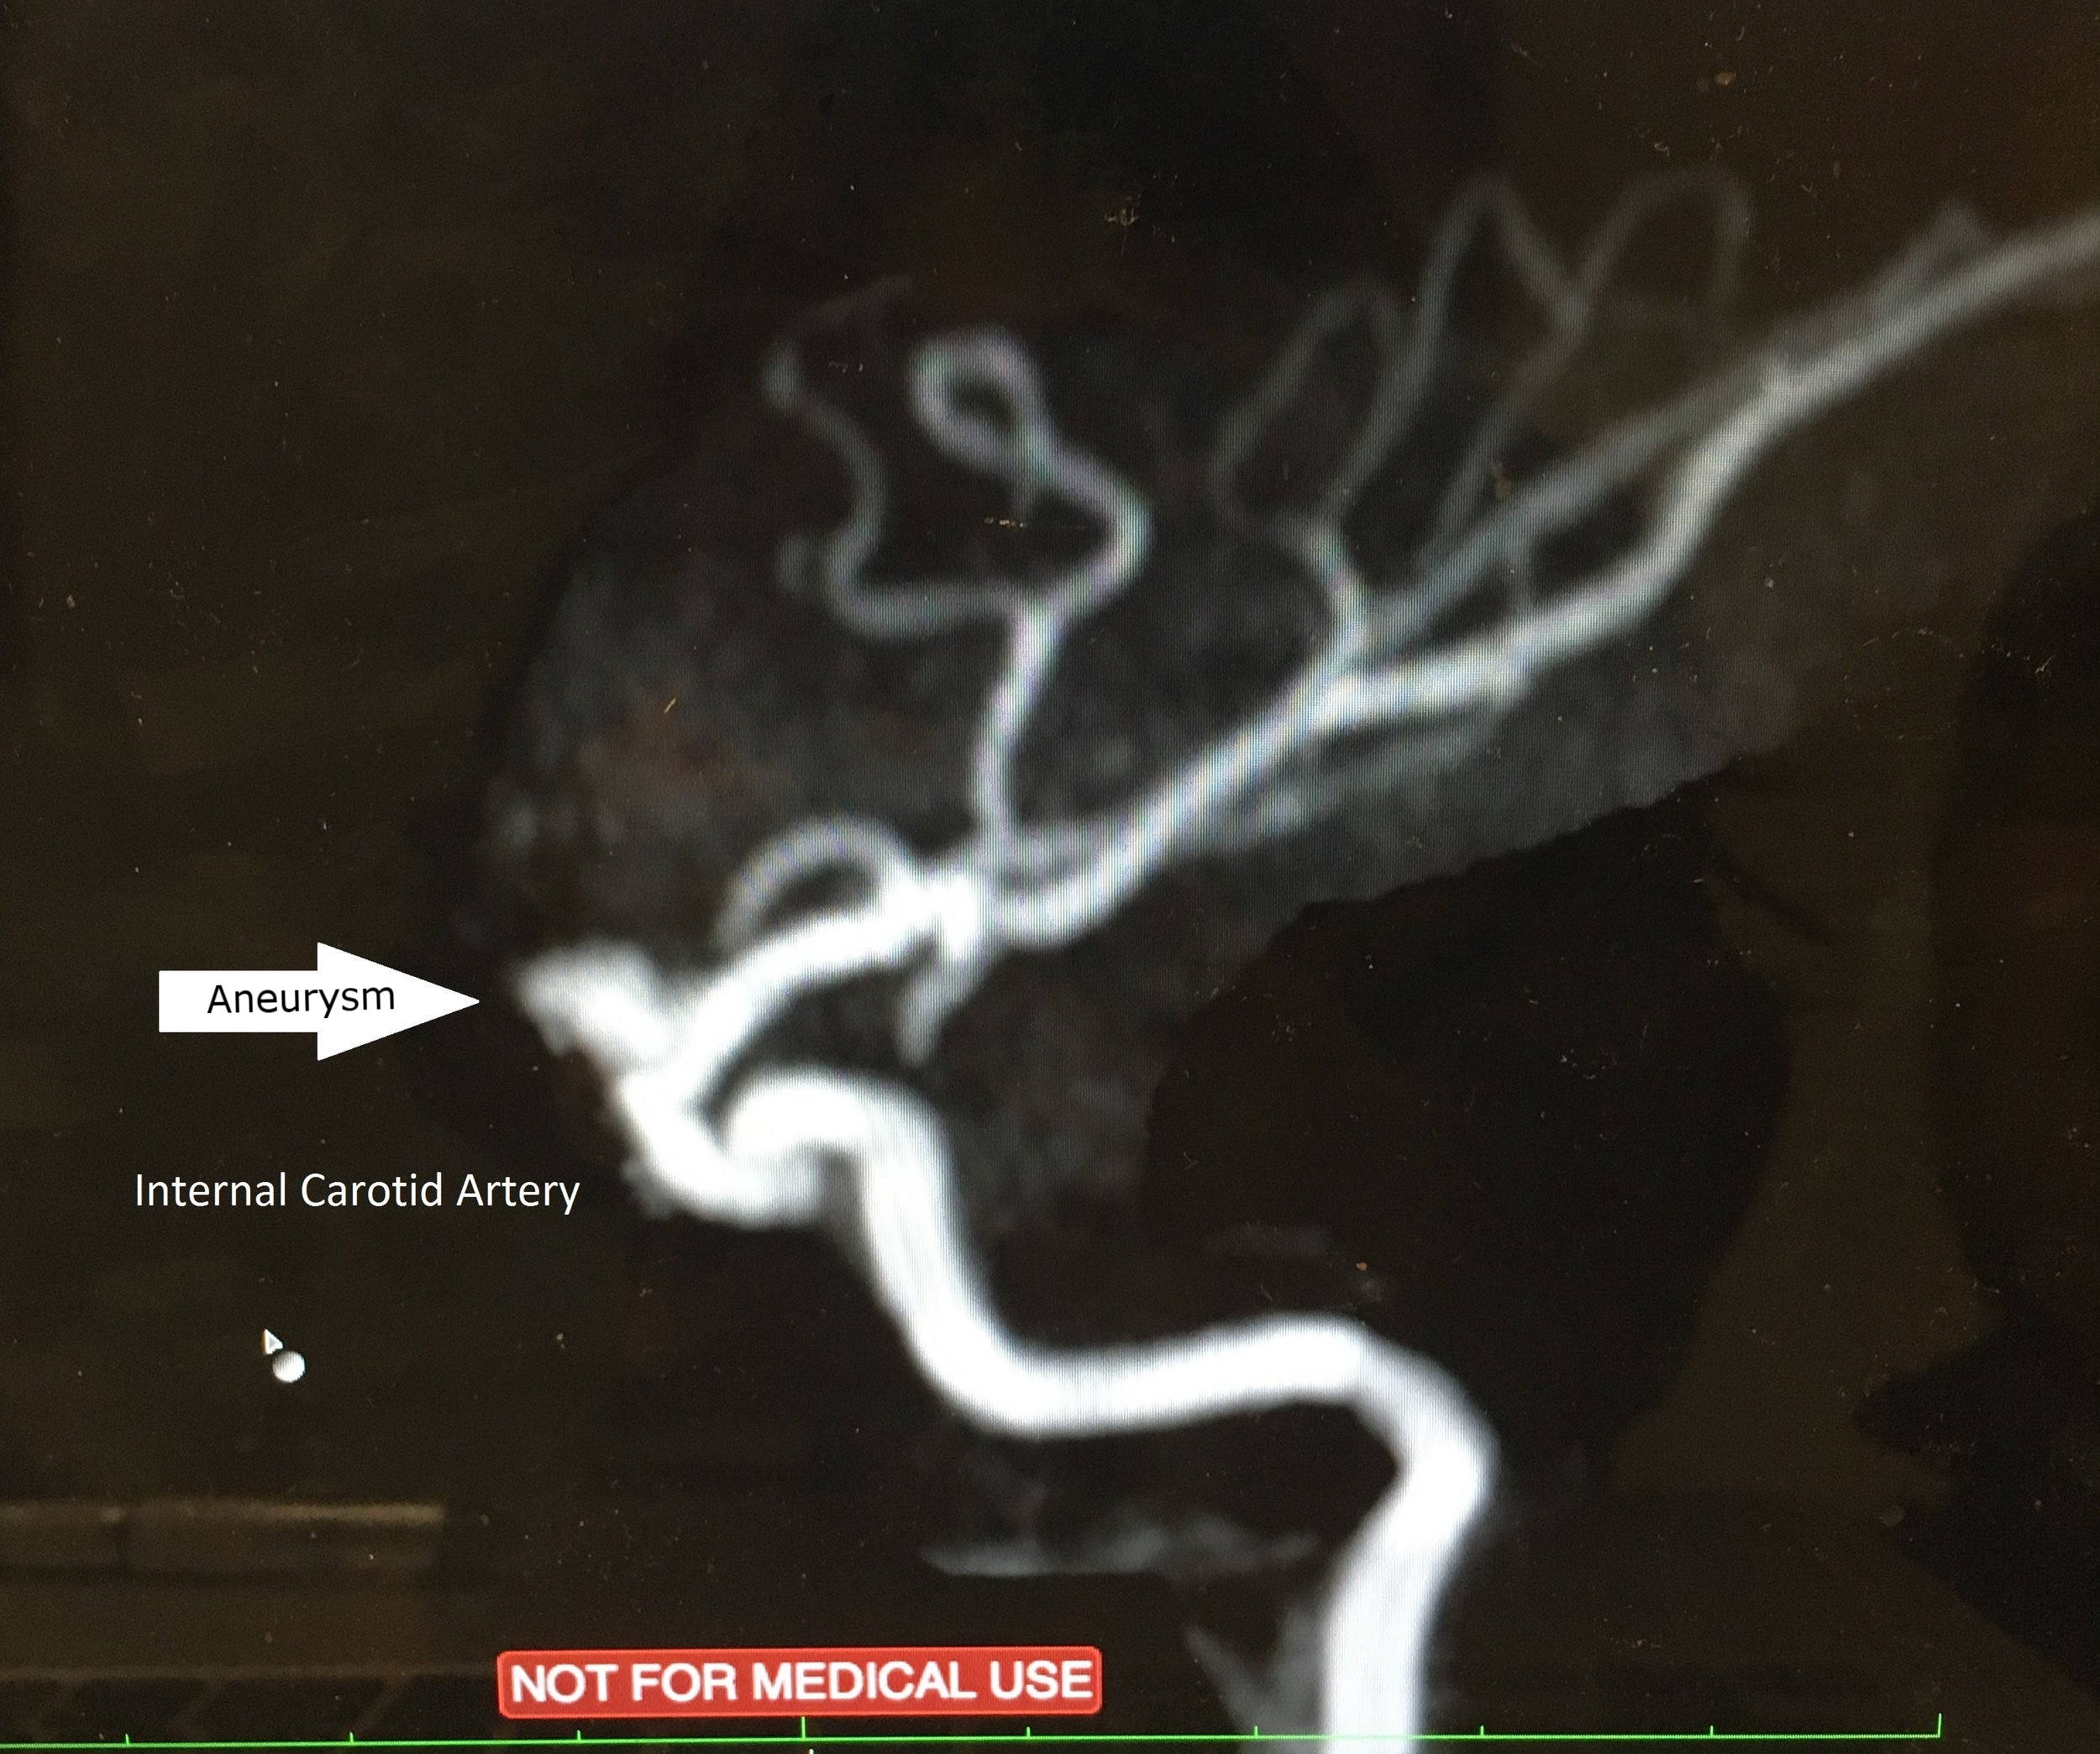 Say hello to my little friend, my aneurysm.